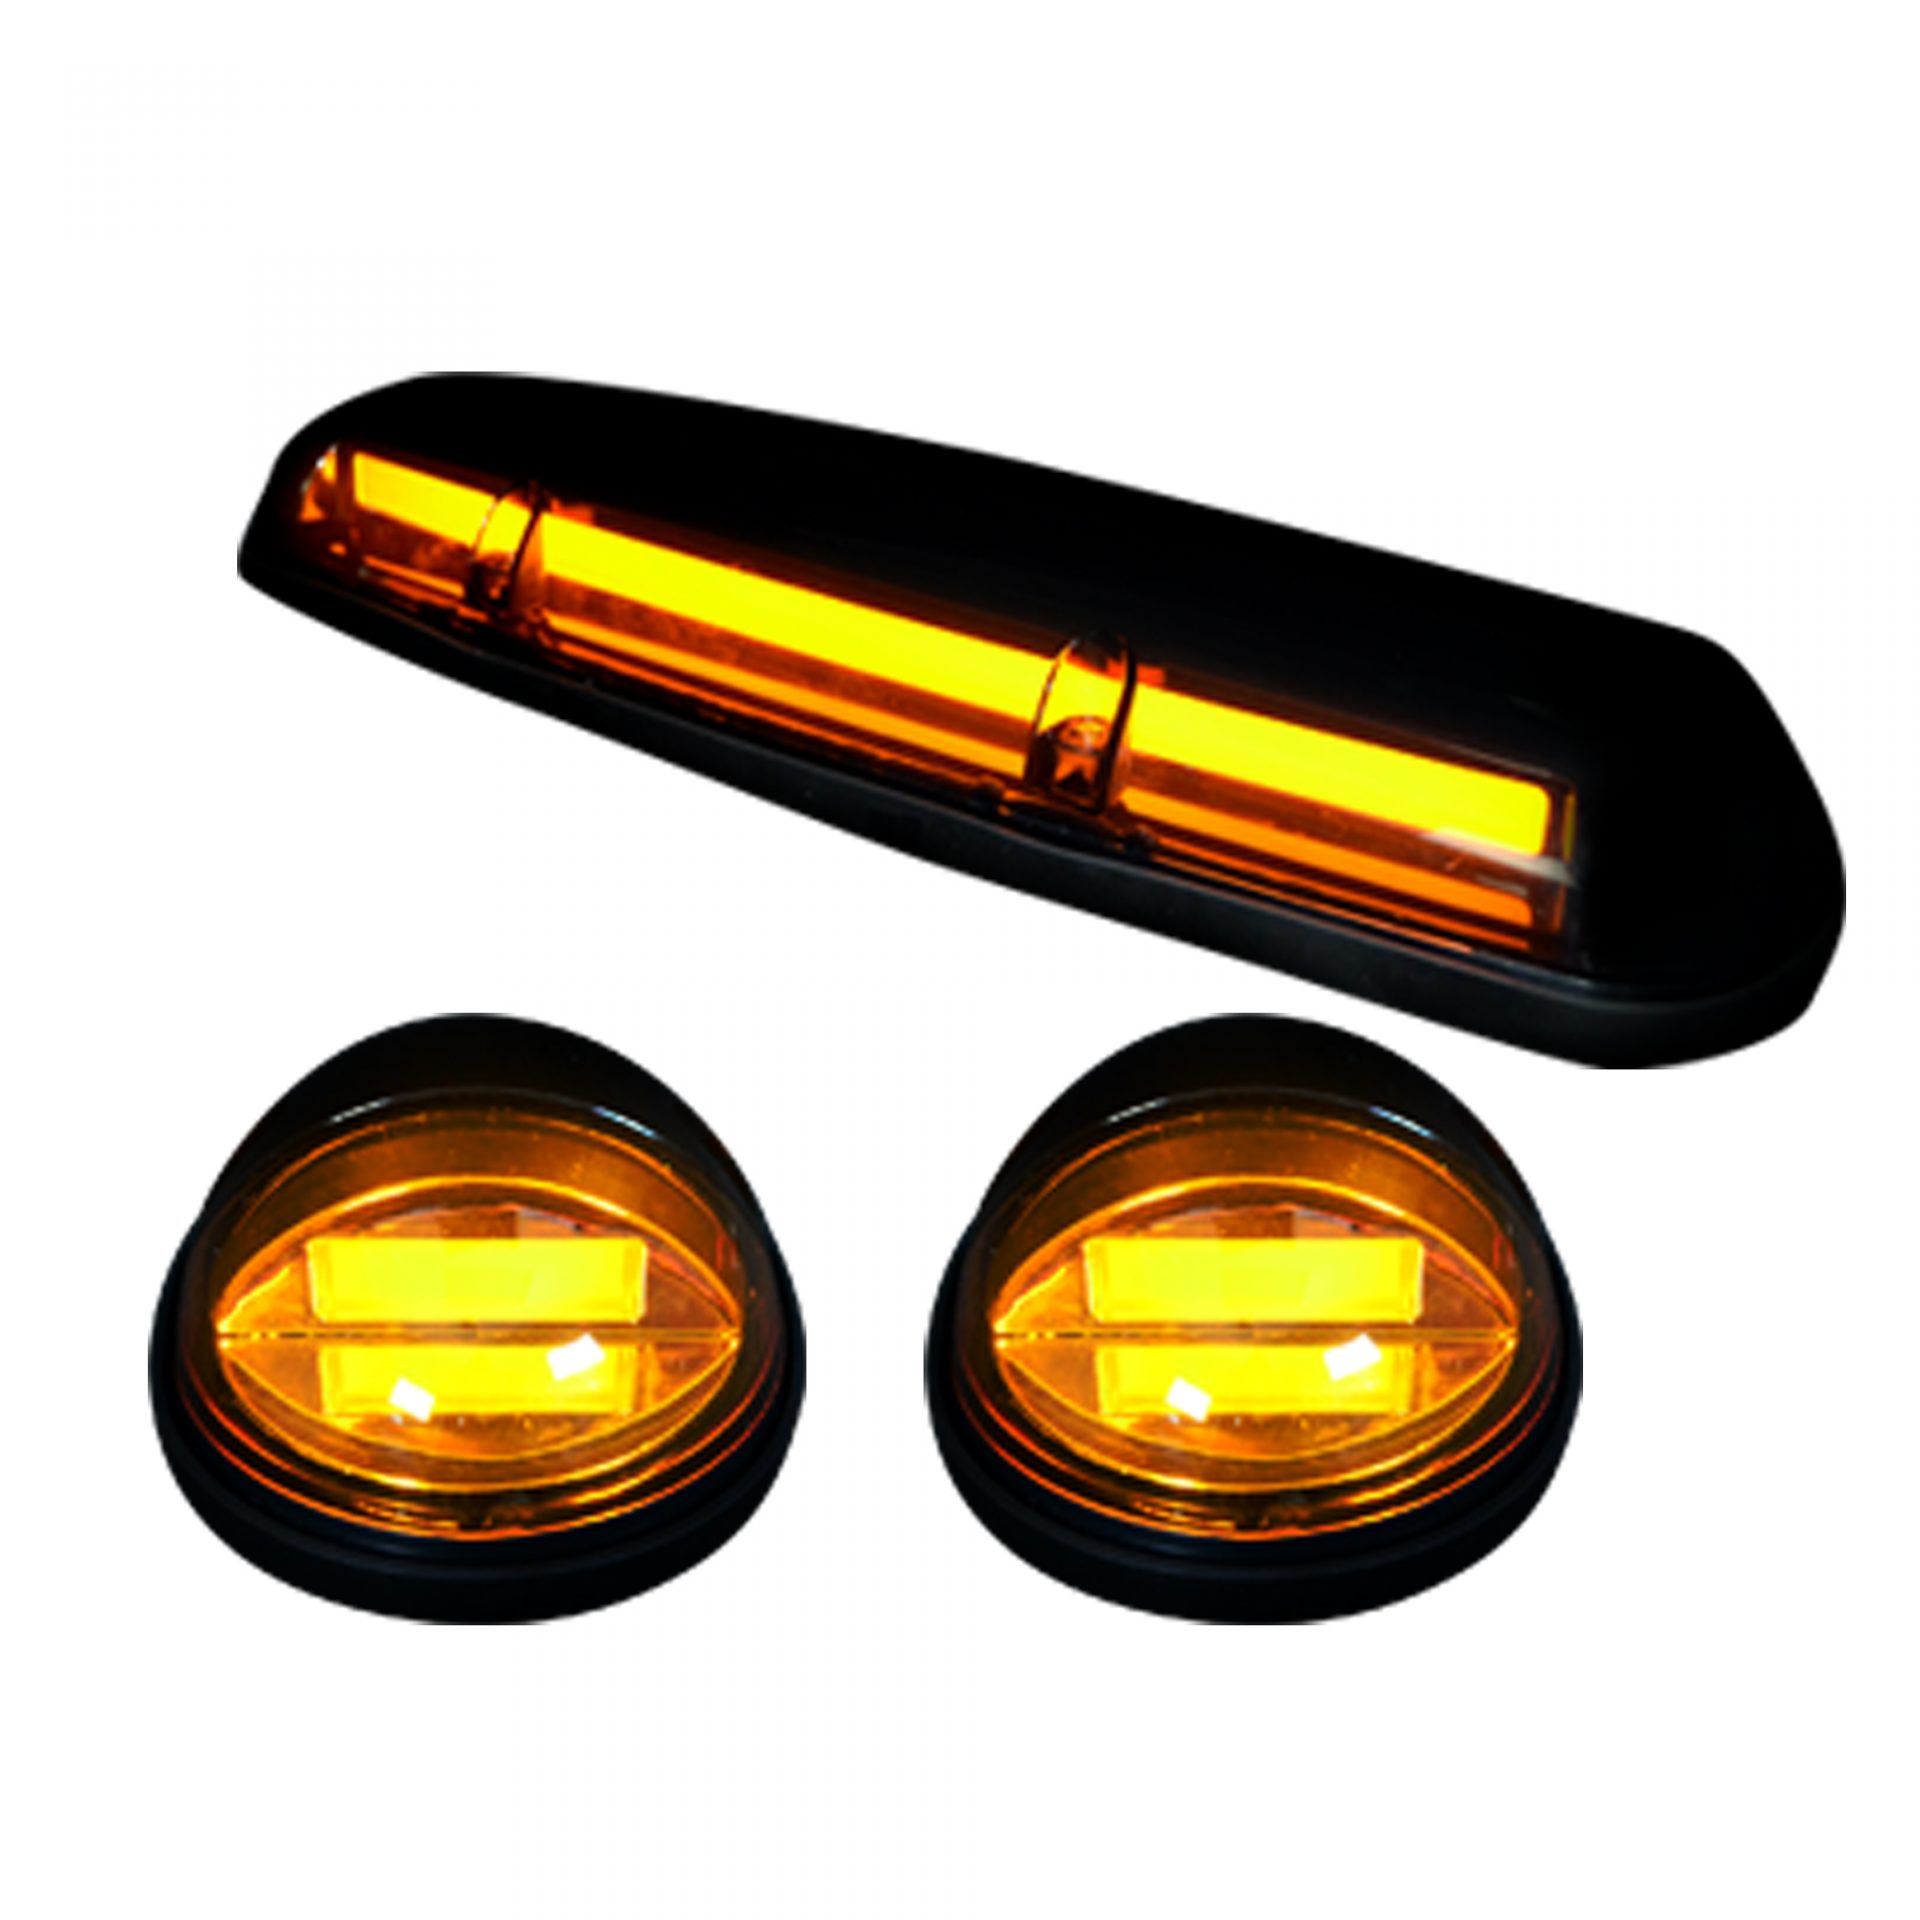 hight resolution of recon 264155amhp gmc chevy 02 07 1st gen classic body style heavy duty 3 piece set amber cab roof light lens with amber high power oled bar style